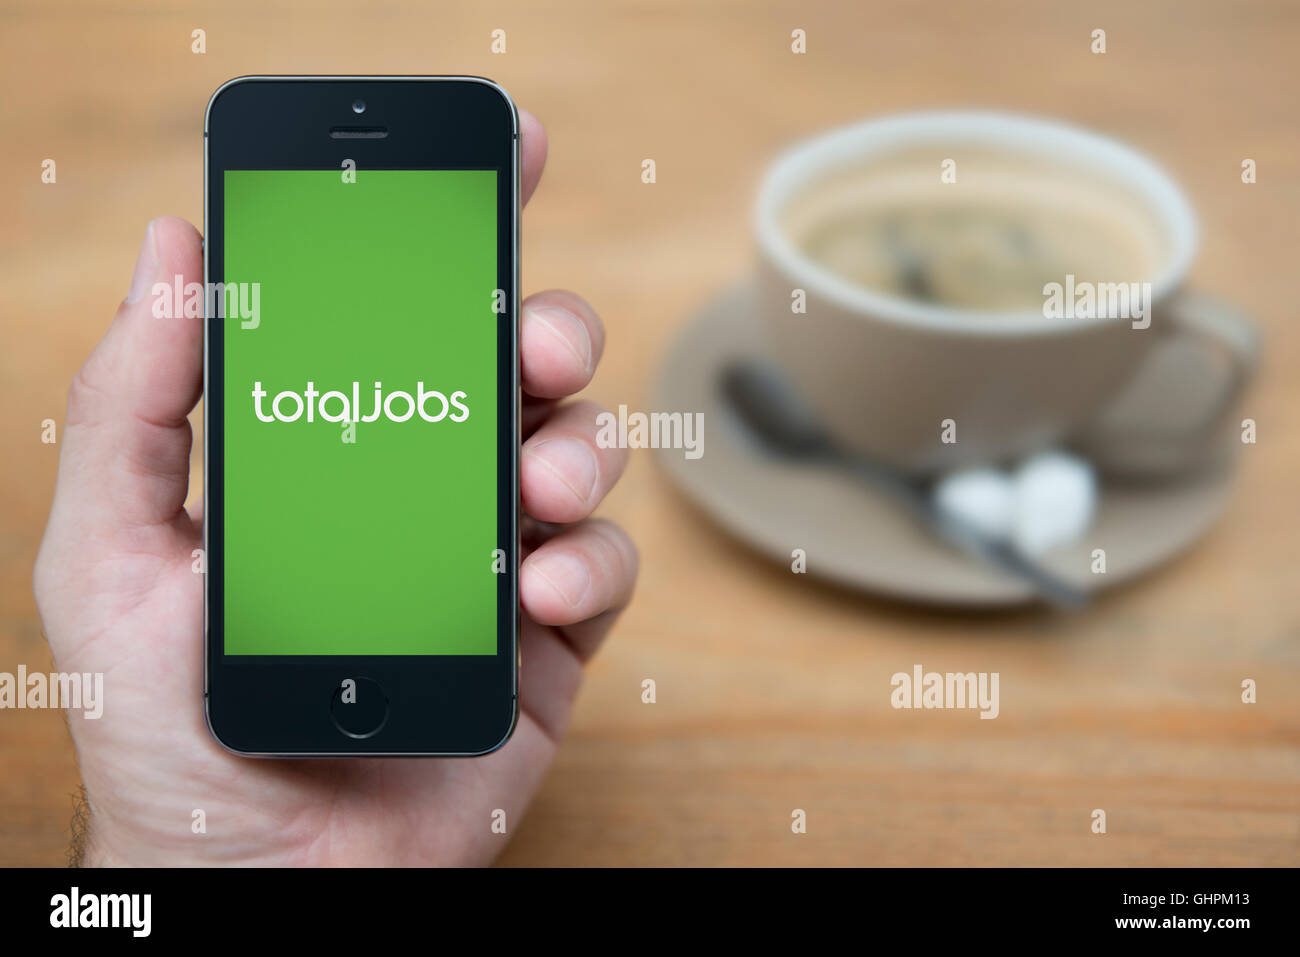 A man looks at his iPhone which displays the Total Jobs logo, while sat with a cup of coffee (Editorial use only). - Stock Image